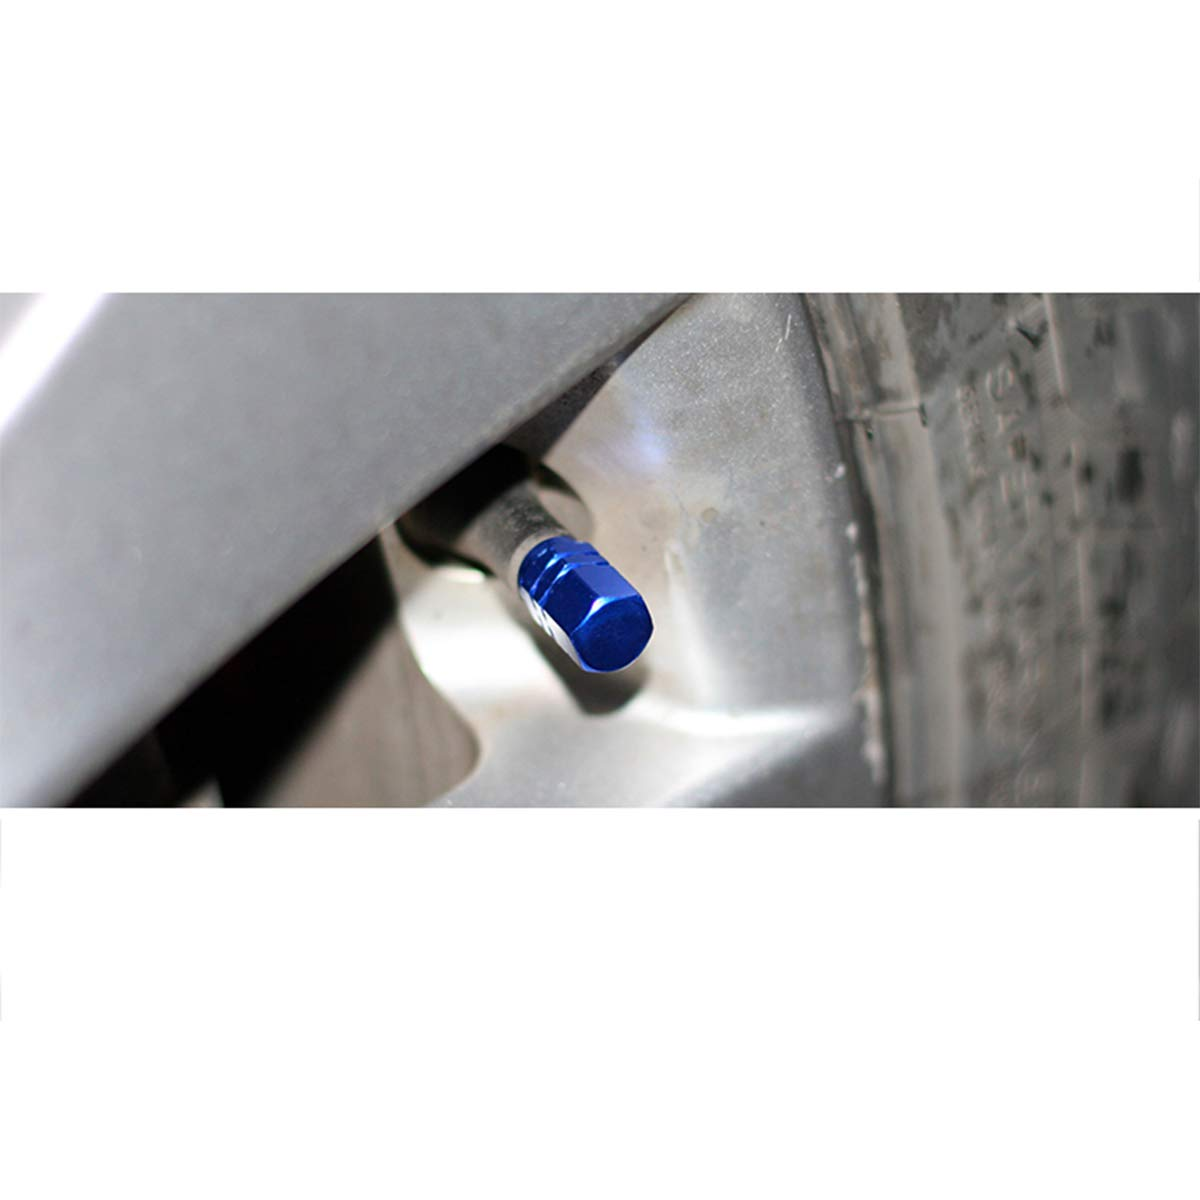 Blue Hexagon Shape Y-SPACE 5 Pieces Tire Stem Valve Caps Wheel Valve Covers Car Dustproof Tire Cap